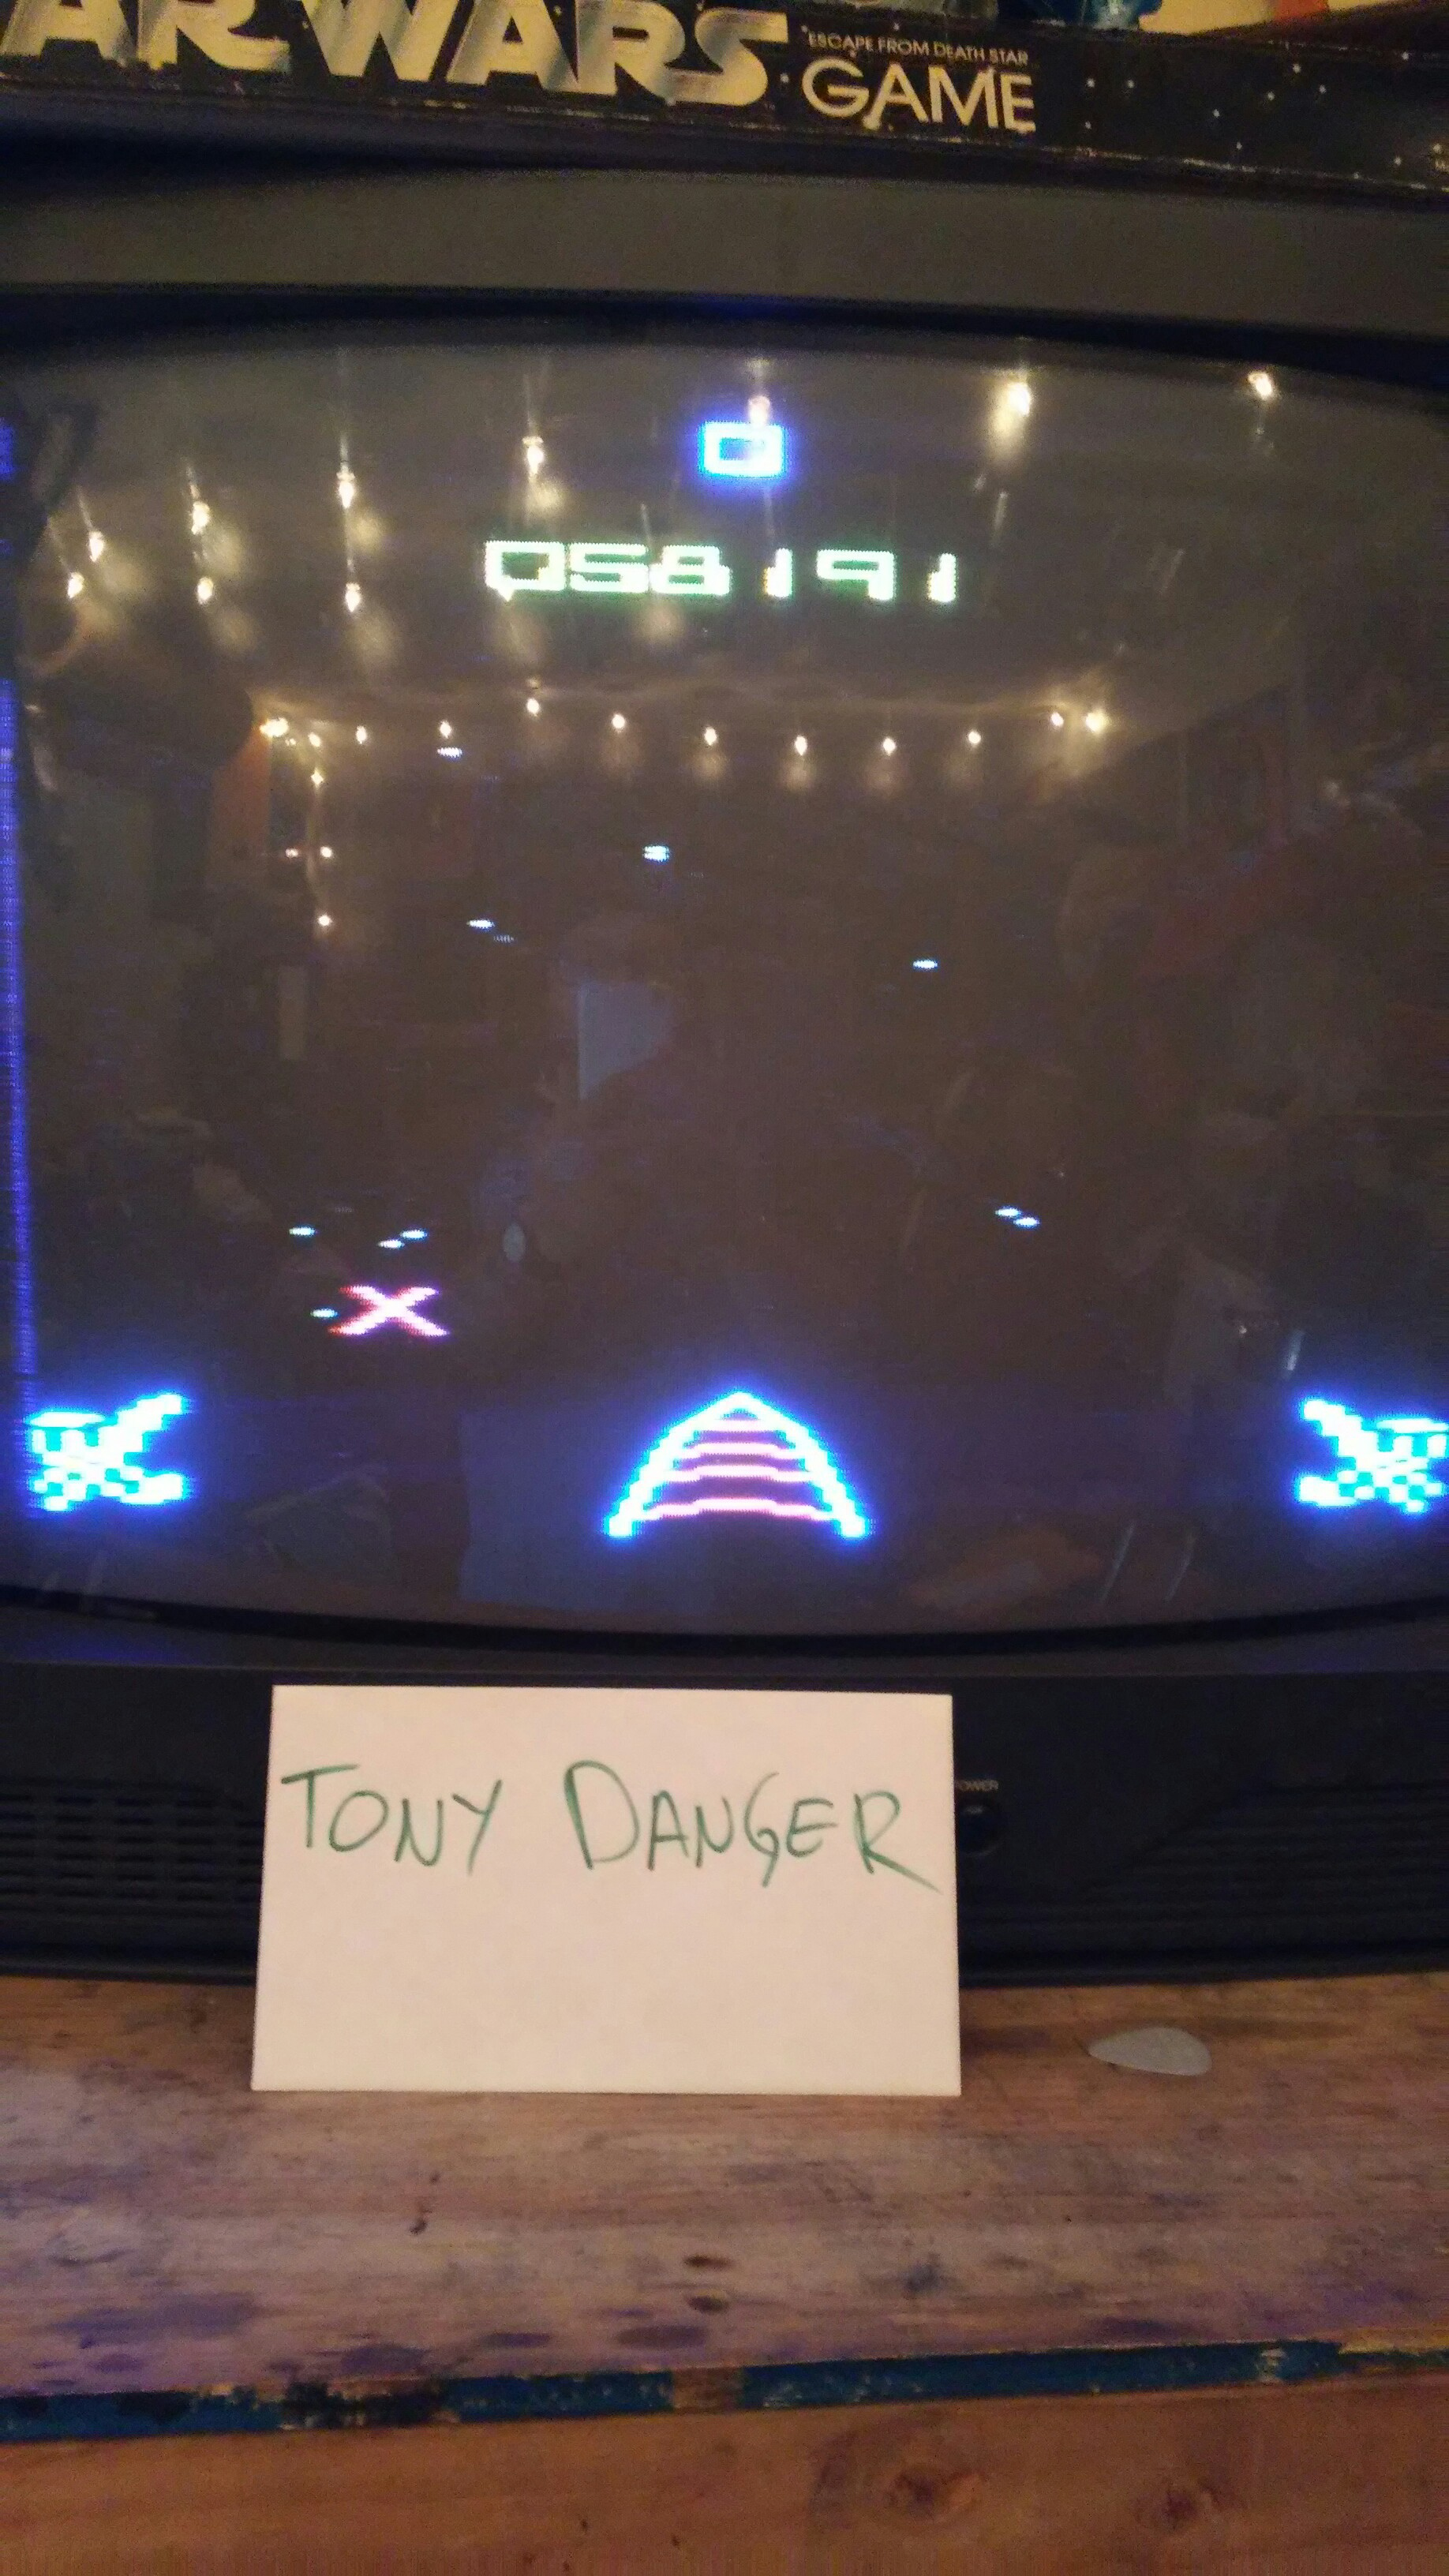 Star Wars: The Arcade Game 58,191 points